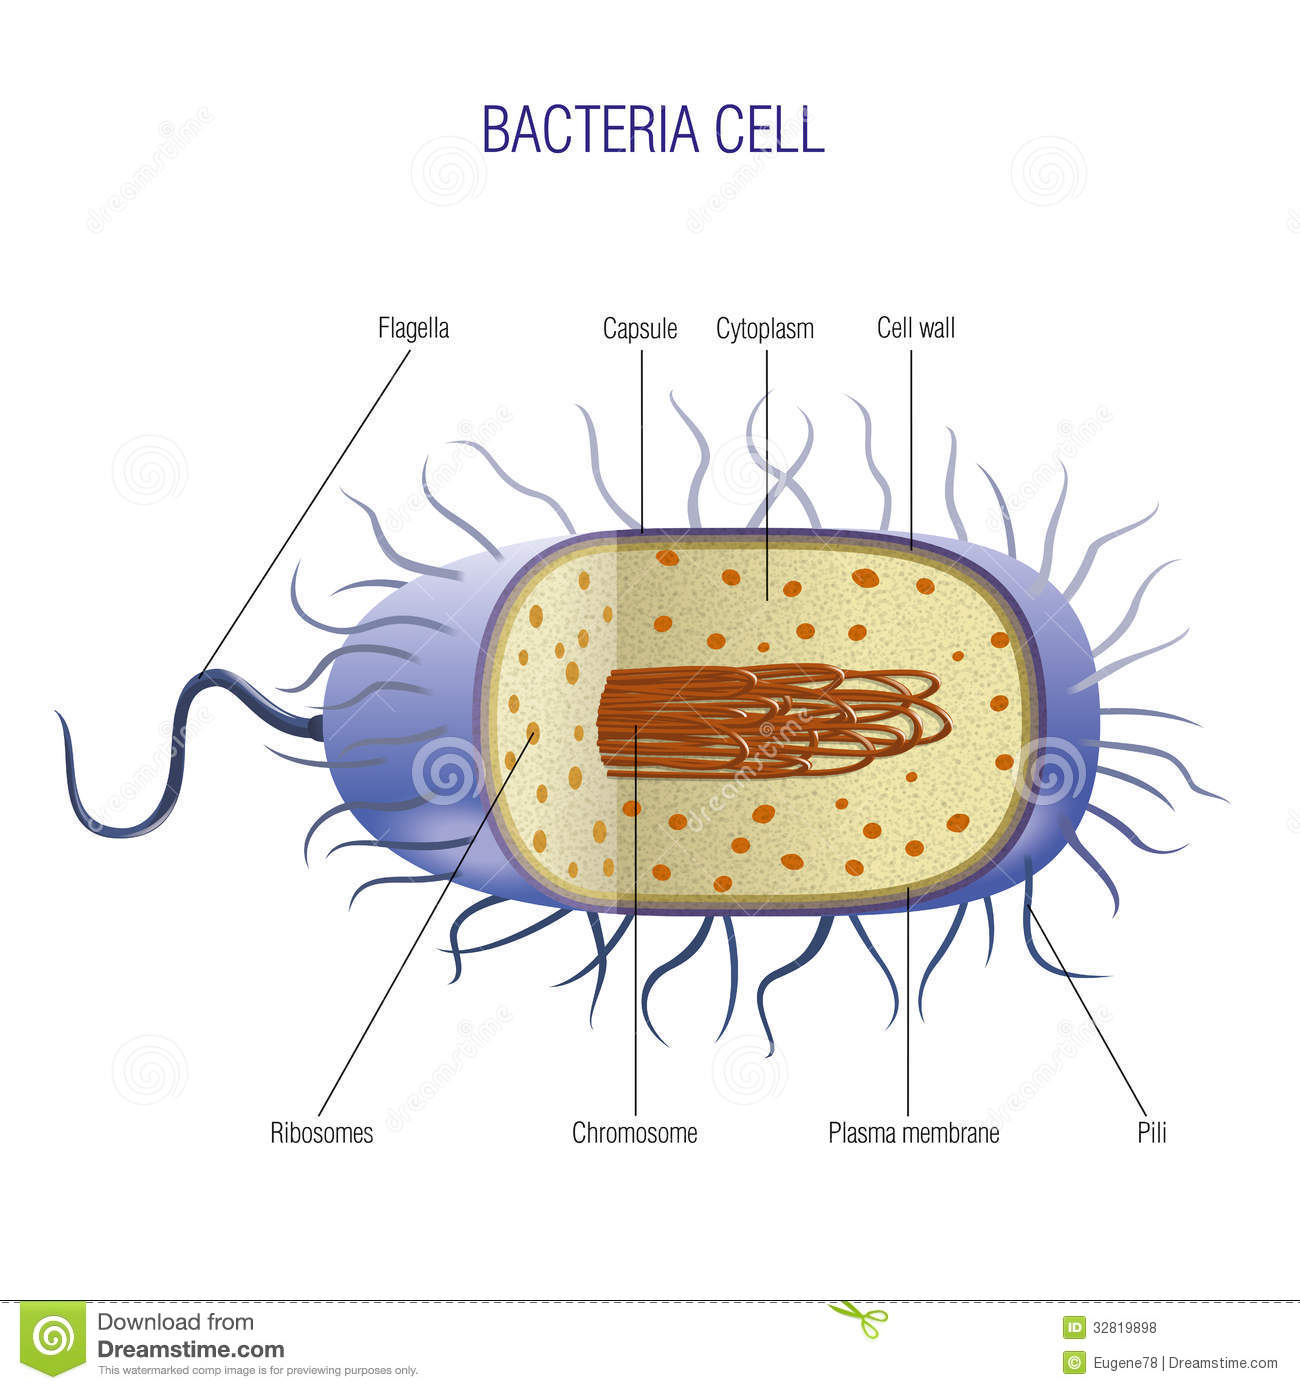 Bacteria cell cut away scientifically correct vector illustration